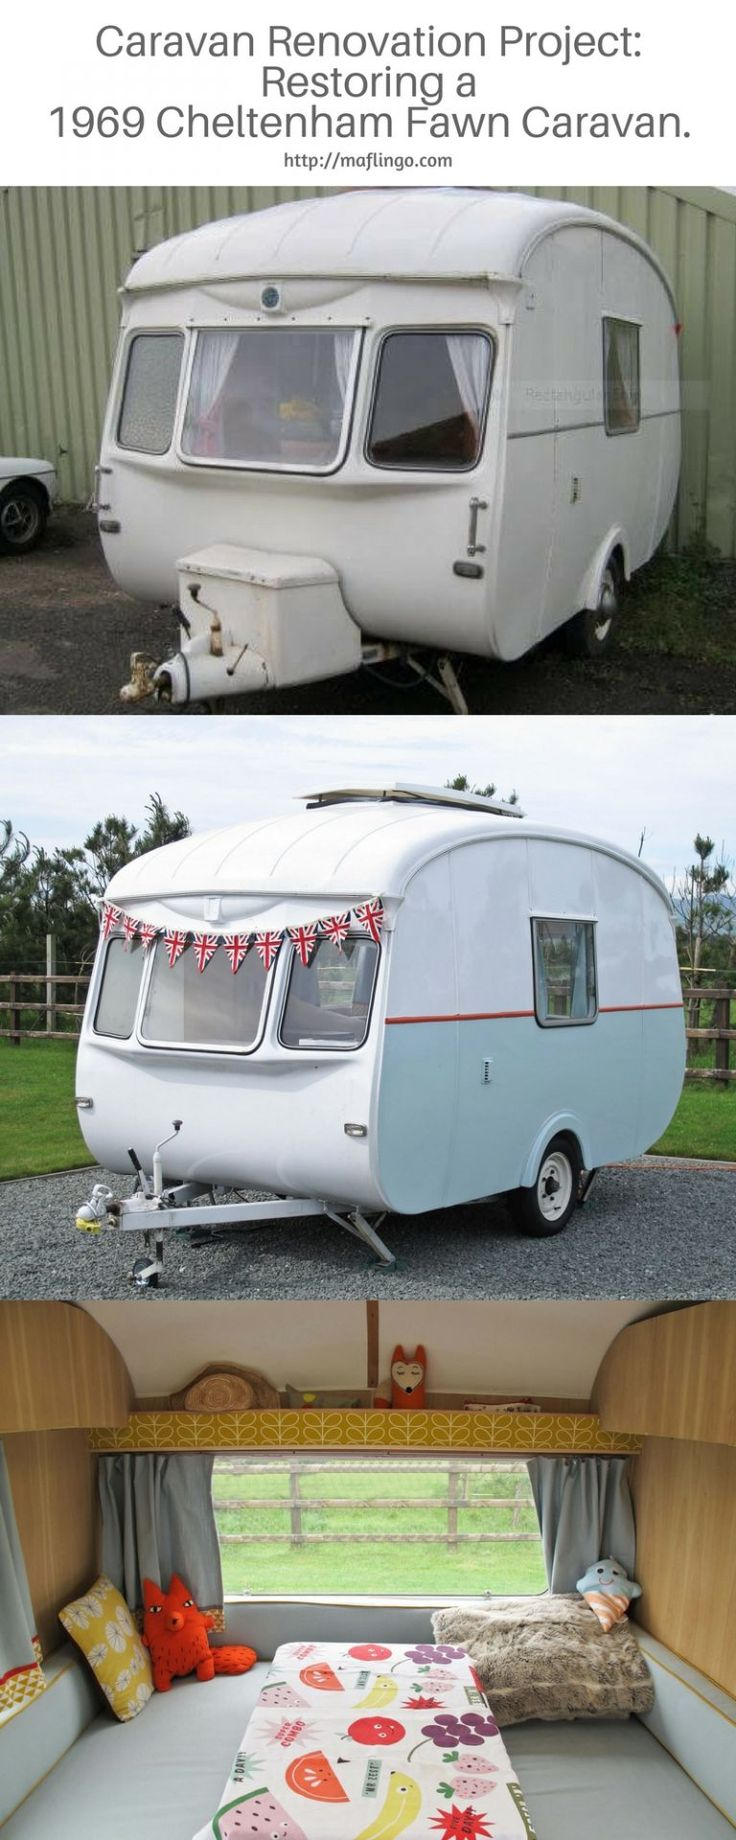 Renovation Project. Beautiful revamp of a 1969 Cheltenham Fawn Camper Caravan. This isn't just restoring to its former glory. It has exceeded it with handmade piped cushion covers, cushions and curtains and hand built oak interior. It is a thing of beauty